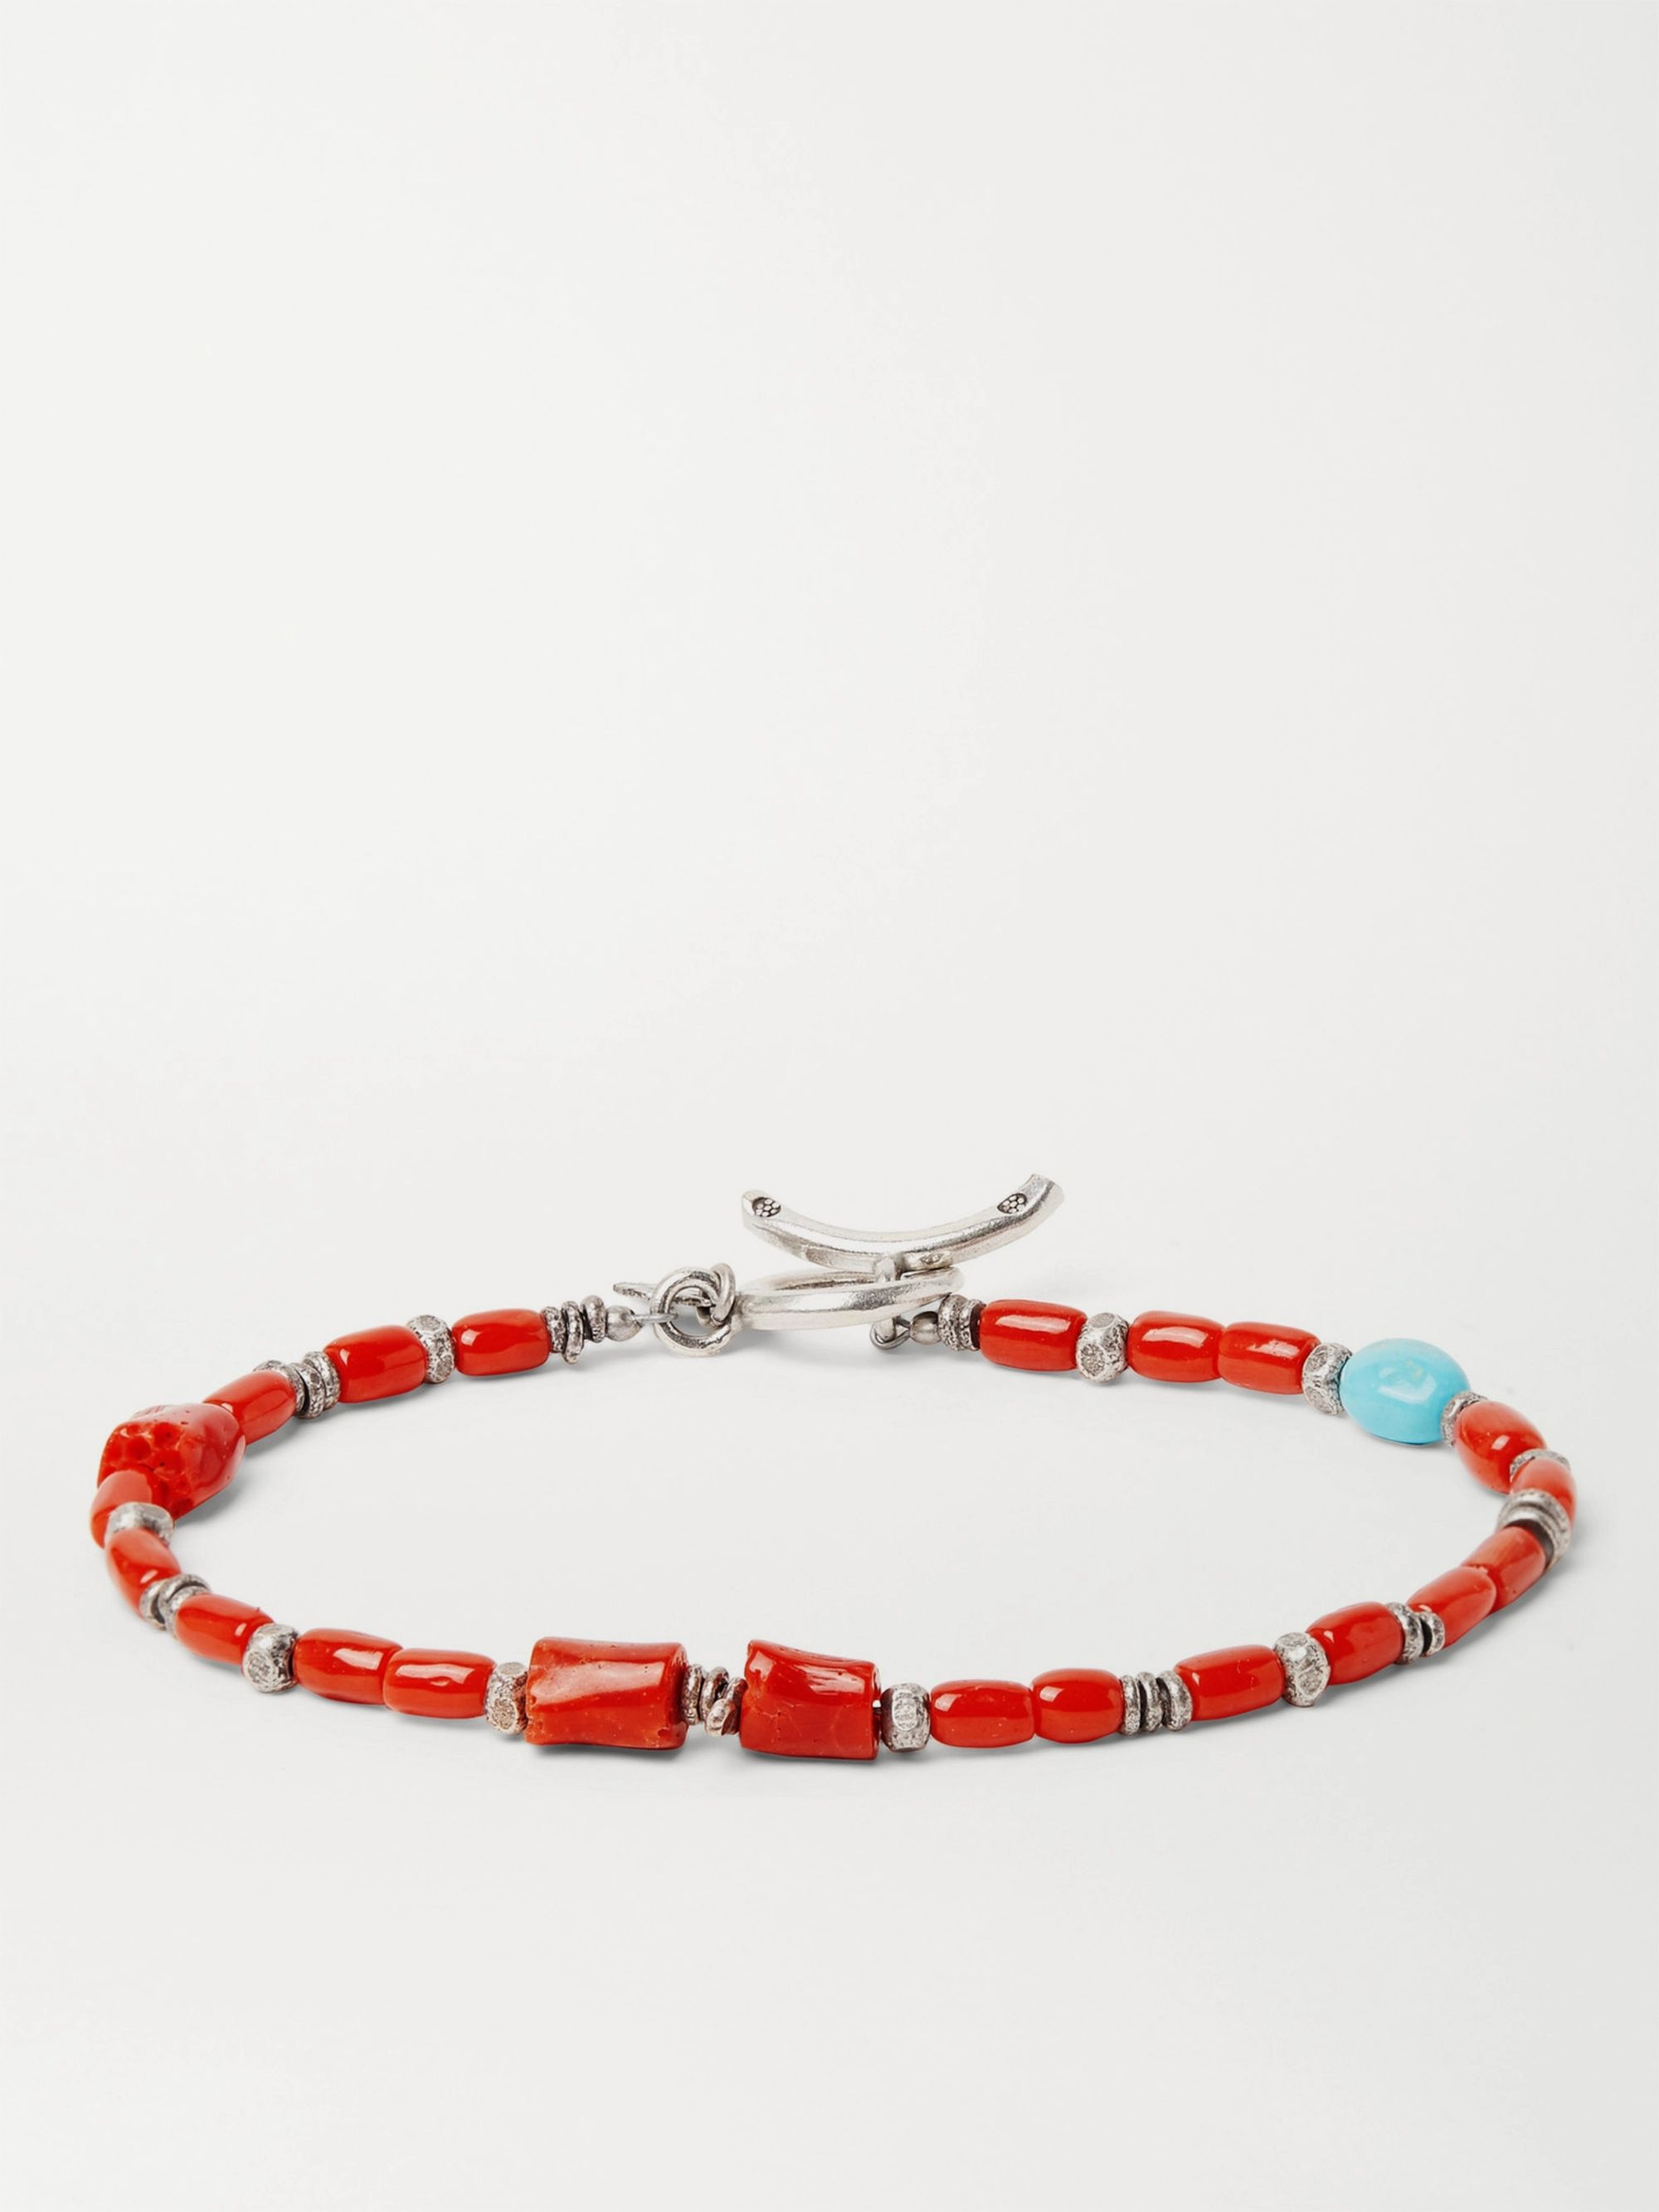 Peyote Bird Coral Turquoise and Burnished Sterling Silver Bracelet,Red